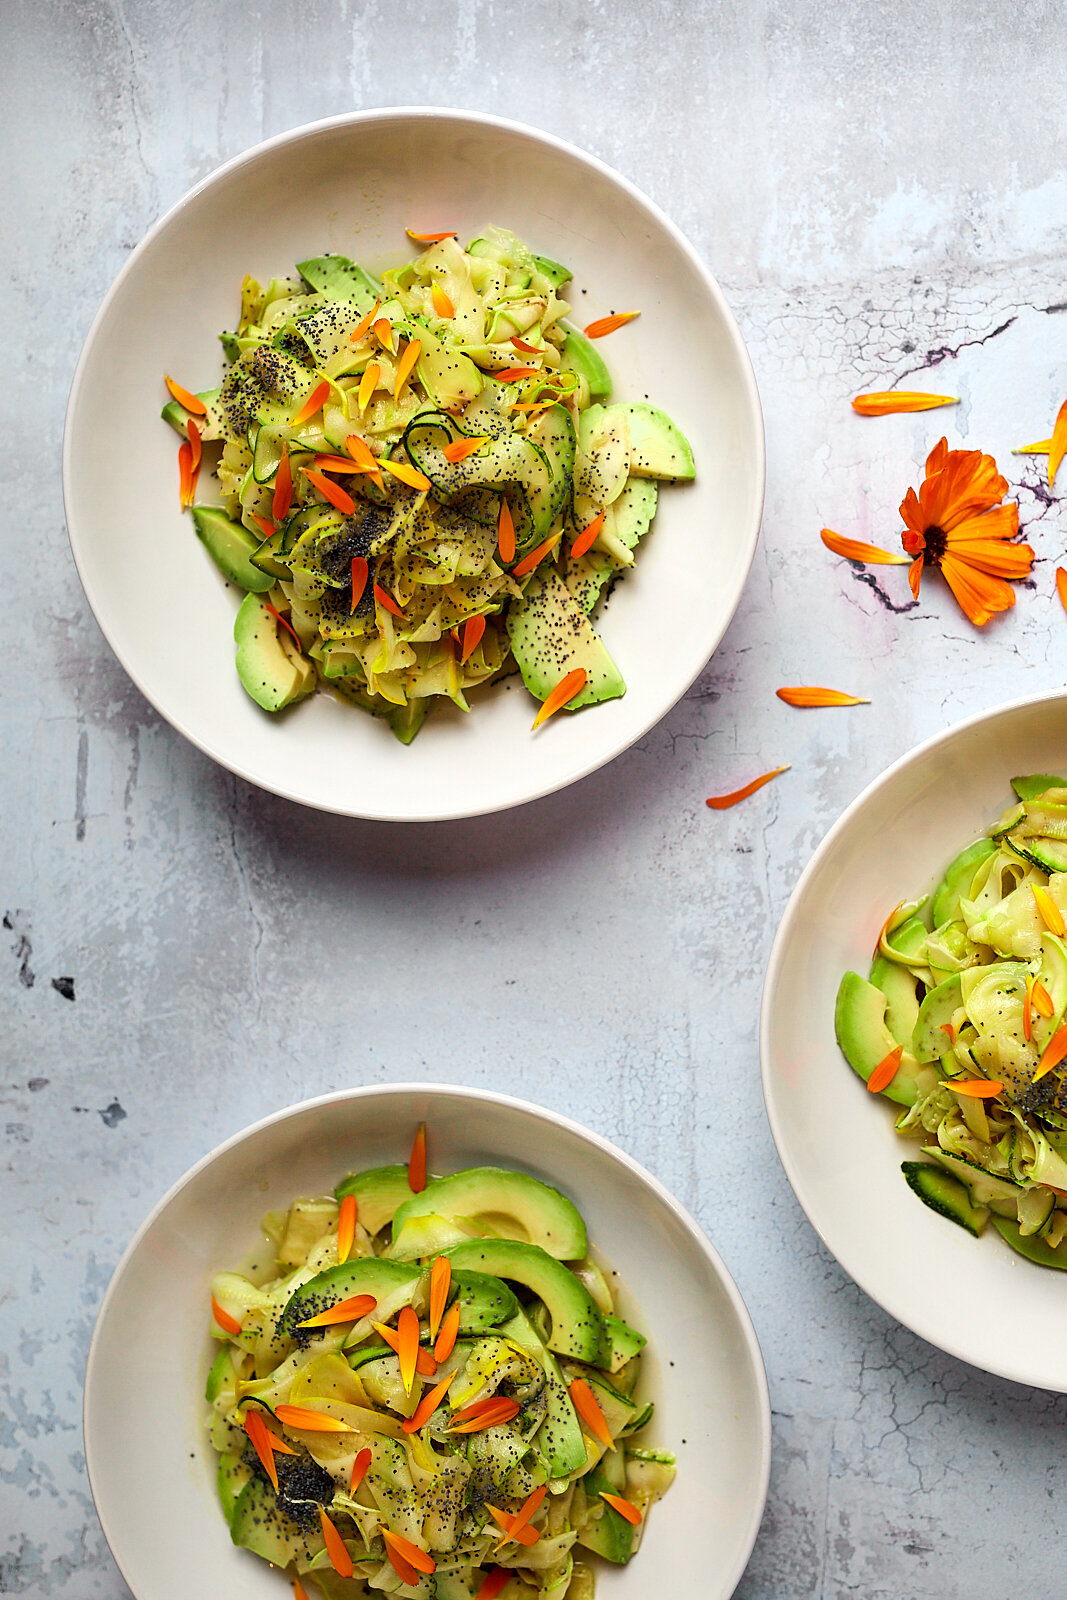 Courgette, avocado and lemon salad with poppyseeds